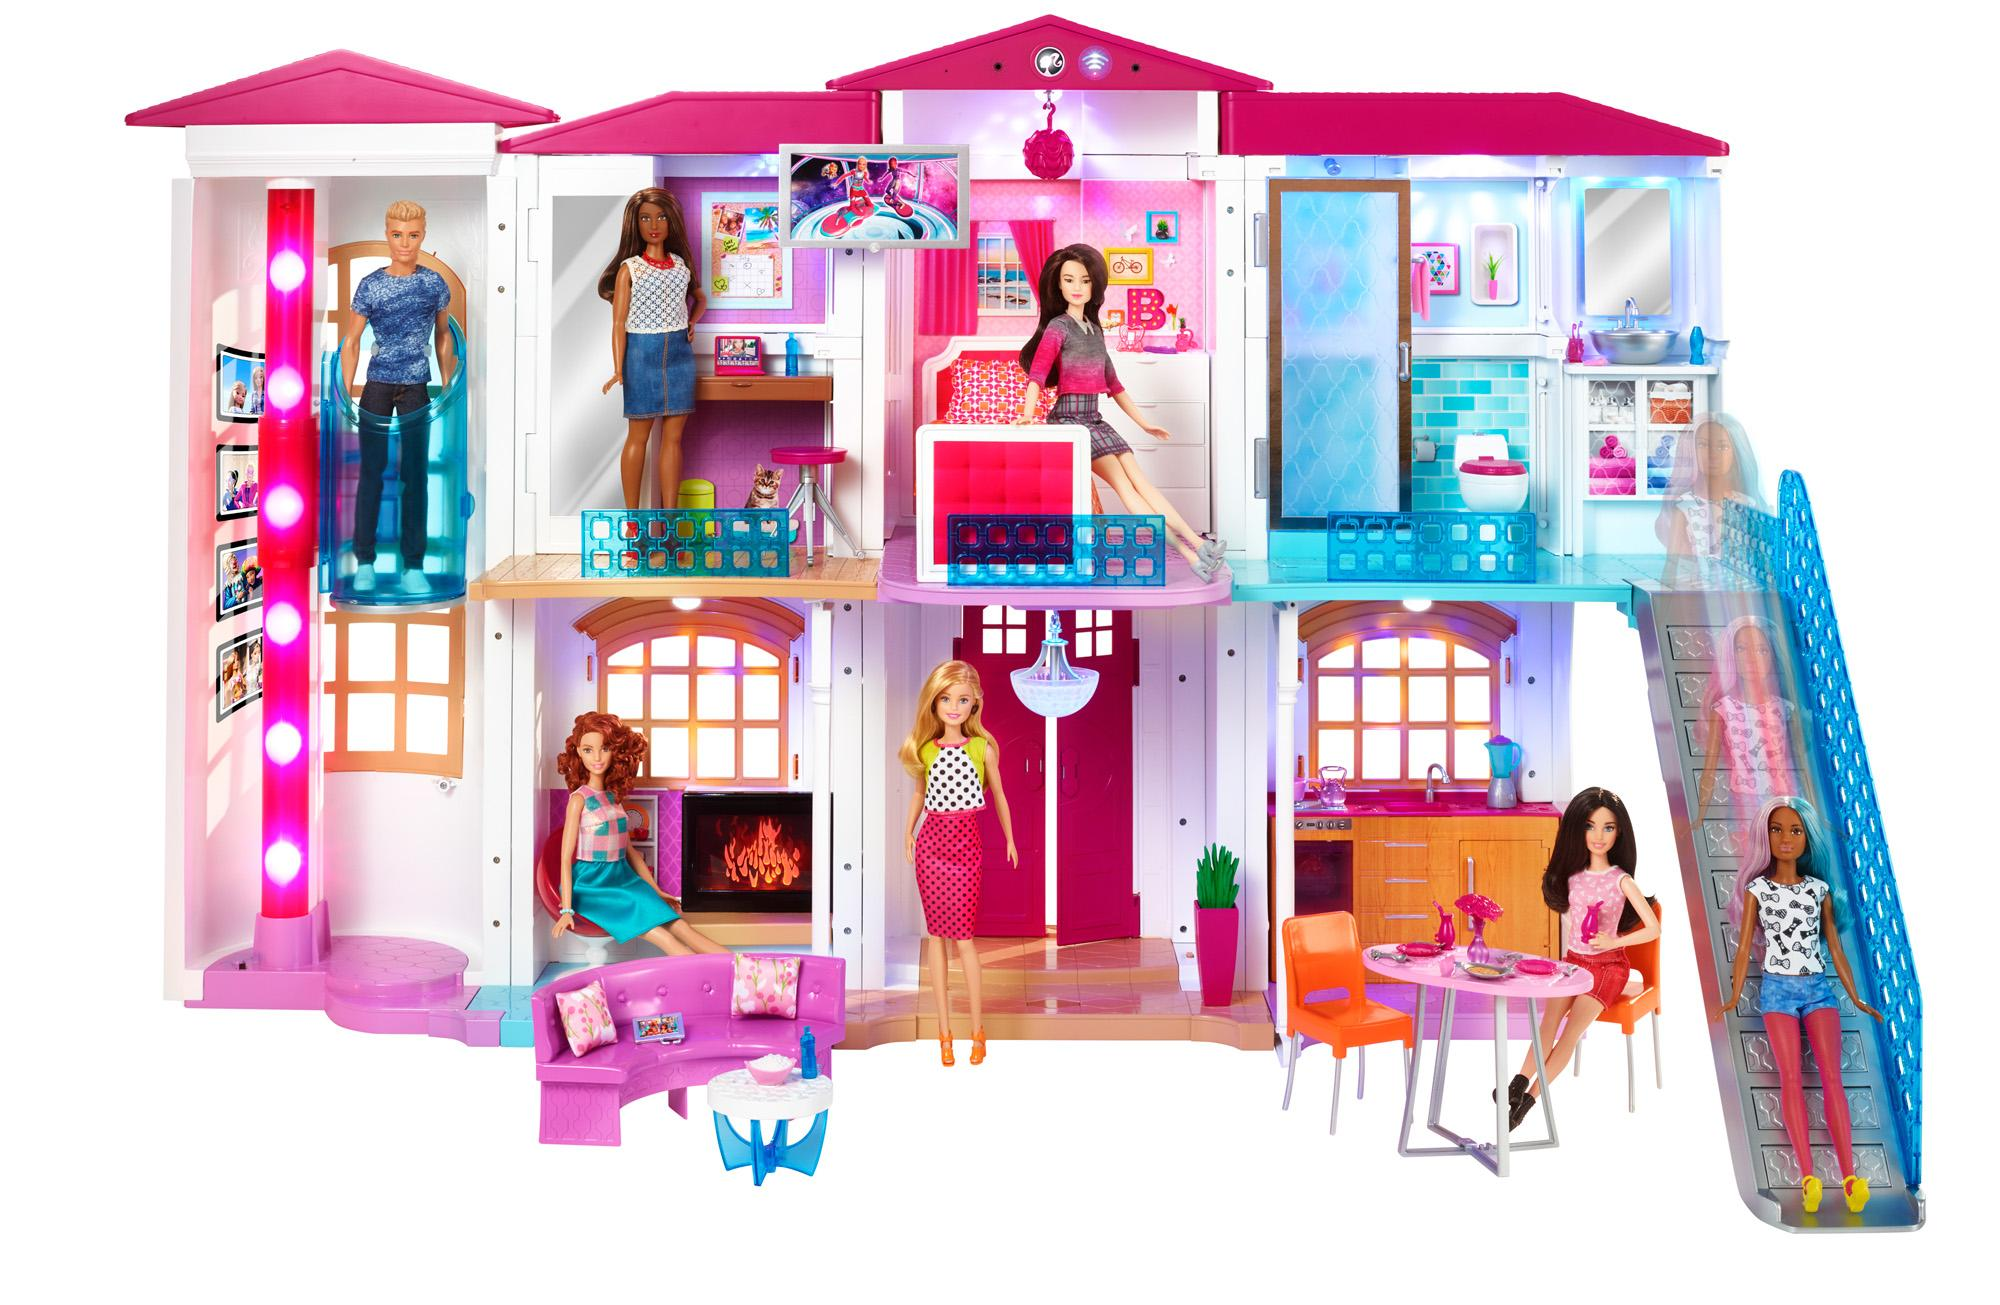 2016 NEW BARBIE HELLO DREAM HOUSE DREAMHOUSE PLAYSET SMART VOICE EBay